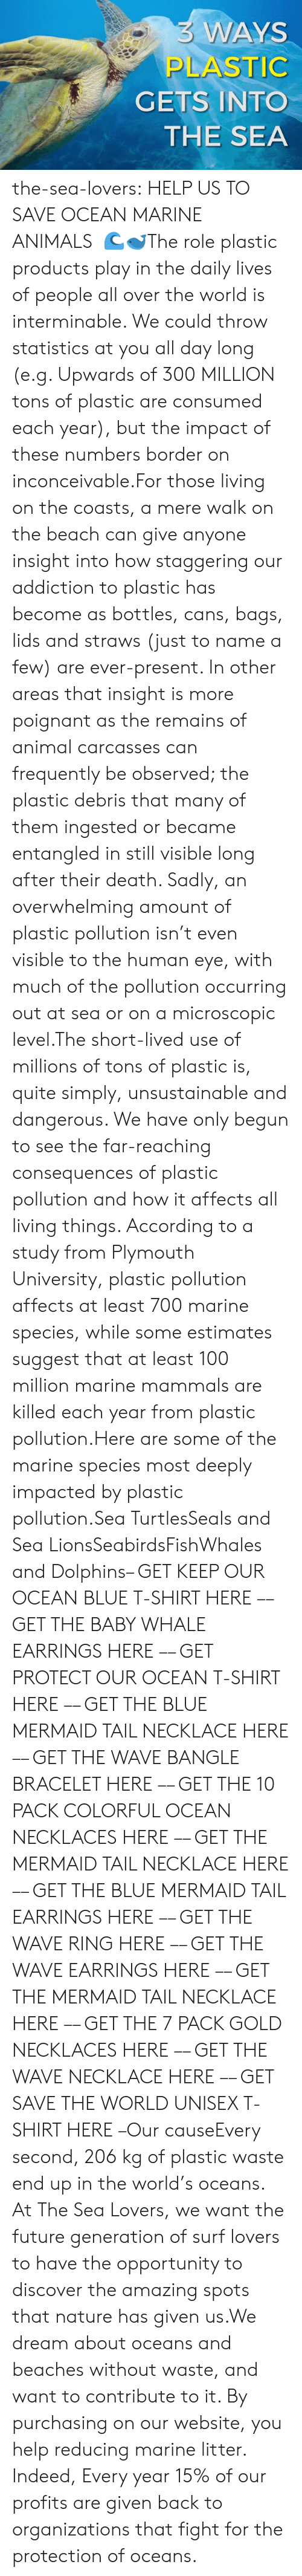 insight: 3 WAYS  PLASTIC  GETS INTO  THE SEA the-sea-lovers:  HELP US TO SAVE OCEAN  MARINE ANIMALS  🌊🐋The role plastic products play in the daily lives of people all over the world is interminable. We could throw statistics at you all day long (e.g. Upwards of 300 MILLION tons of plastic are consumed each year), but the impact of these numbers border on inconceivable.For those living on the coasts, a mere walk on the beach can give anyone insight into how staggering our addiction to plastic has become as bottles, cans, bags, lids and straws (just to name a few) are ever-present. In other areas that insight is more poignant as the remains of animal carcasses can frequently be observed; the plastic debris that many of them ingested or became entangled in still visible long after their death. Sadly, an overwhelming amount of plastic pollution isn't even visible to the human eye, with much of the pollution occurring out at sea or on a microscopic level.The short-lived use of millions of tons of plastic is, quite simply, unsustainable and dangerous. We have only begun to see the far-reaching consequences of plastic pollution and how it affects all living things. According to a study from Plymouth University, plastic pollution affects at least 700 marine species, while some estimates suggest that at least 100 million marine mammals are killed each year from plastic pollution.Here are some of the marine species most deeply impacted by plastic pollution.Sea TurtlesSeals and Sea LionsSeabirdsFishWhales and Dolphins– GET KEEP OUR OCEAN BLUE T-SHIRT HERE –– GET THE BABY WHALE EARRINGS HERE –– GET PROTECT OUR OCEAN T-SHIRT HERE –– GET THE BLUE MERMAID TAIL NECKLACE HERE –– GET THE WAVE BANGLE BRACELET HERE –– GET THE 10 PACK COLORFUL OCEAN NECKLACES HERE –– GET THE MERMAID TAIL NECKLACE HERE –– GET THE BLUE MERMAID TAIL EARRINGS HERE –– GET THE WAVE RING HERE –– GET THE WAVE EARRINGS HERE –– GET THE MERMAID TAIL NECKLACE HERE –– GET THE 7 PACK GOLD NECKLACES HERE –– GET THE WAVE NECKLACE HERE –– GET SAVE THE WORLD UNISEX T-SHIRT HERE –Our causeEvery second, 206 kg of plastic waste end up in the world's oceans. At The Sea Lovers, we want the future generation of surf lovers to have the opportunity to discover the amazing spots that nature has given us.We dream about oceans and beaches without waste, and want to contribute to it. By purchasing on our website, you help reducing marine litter. Indeed, Every year 15% of our profits are given back to organizations that fight for the protection of oceans.